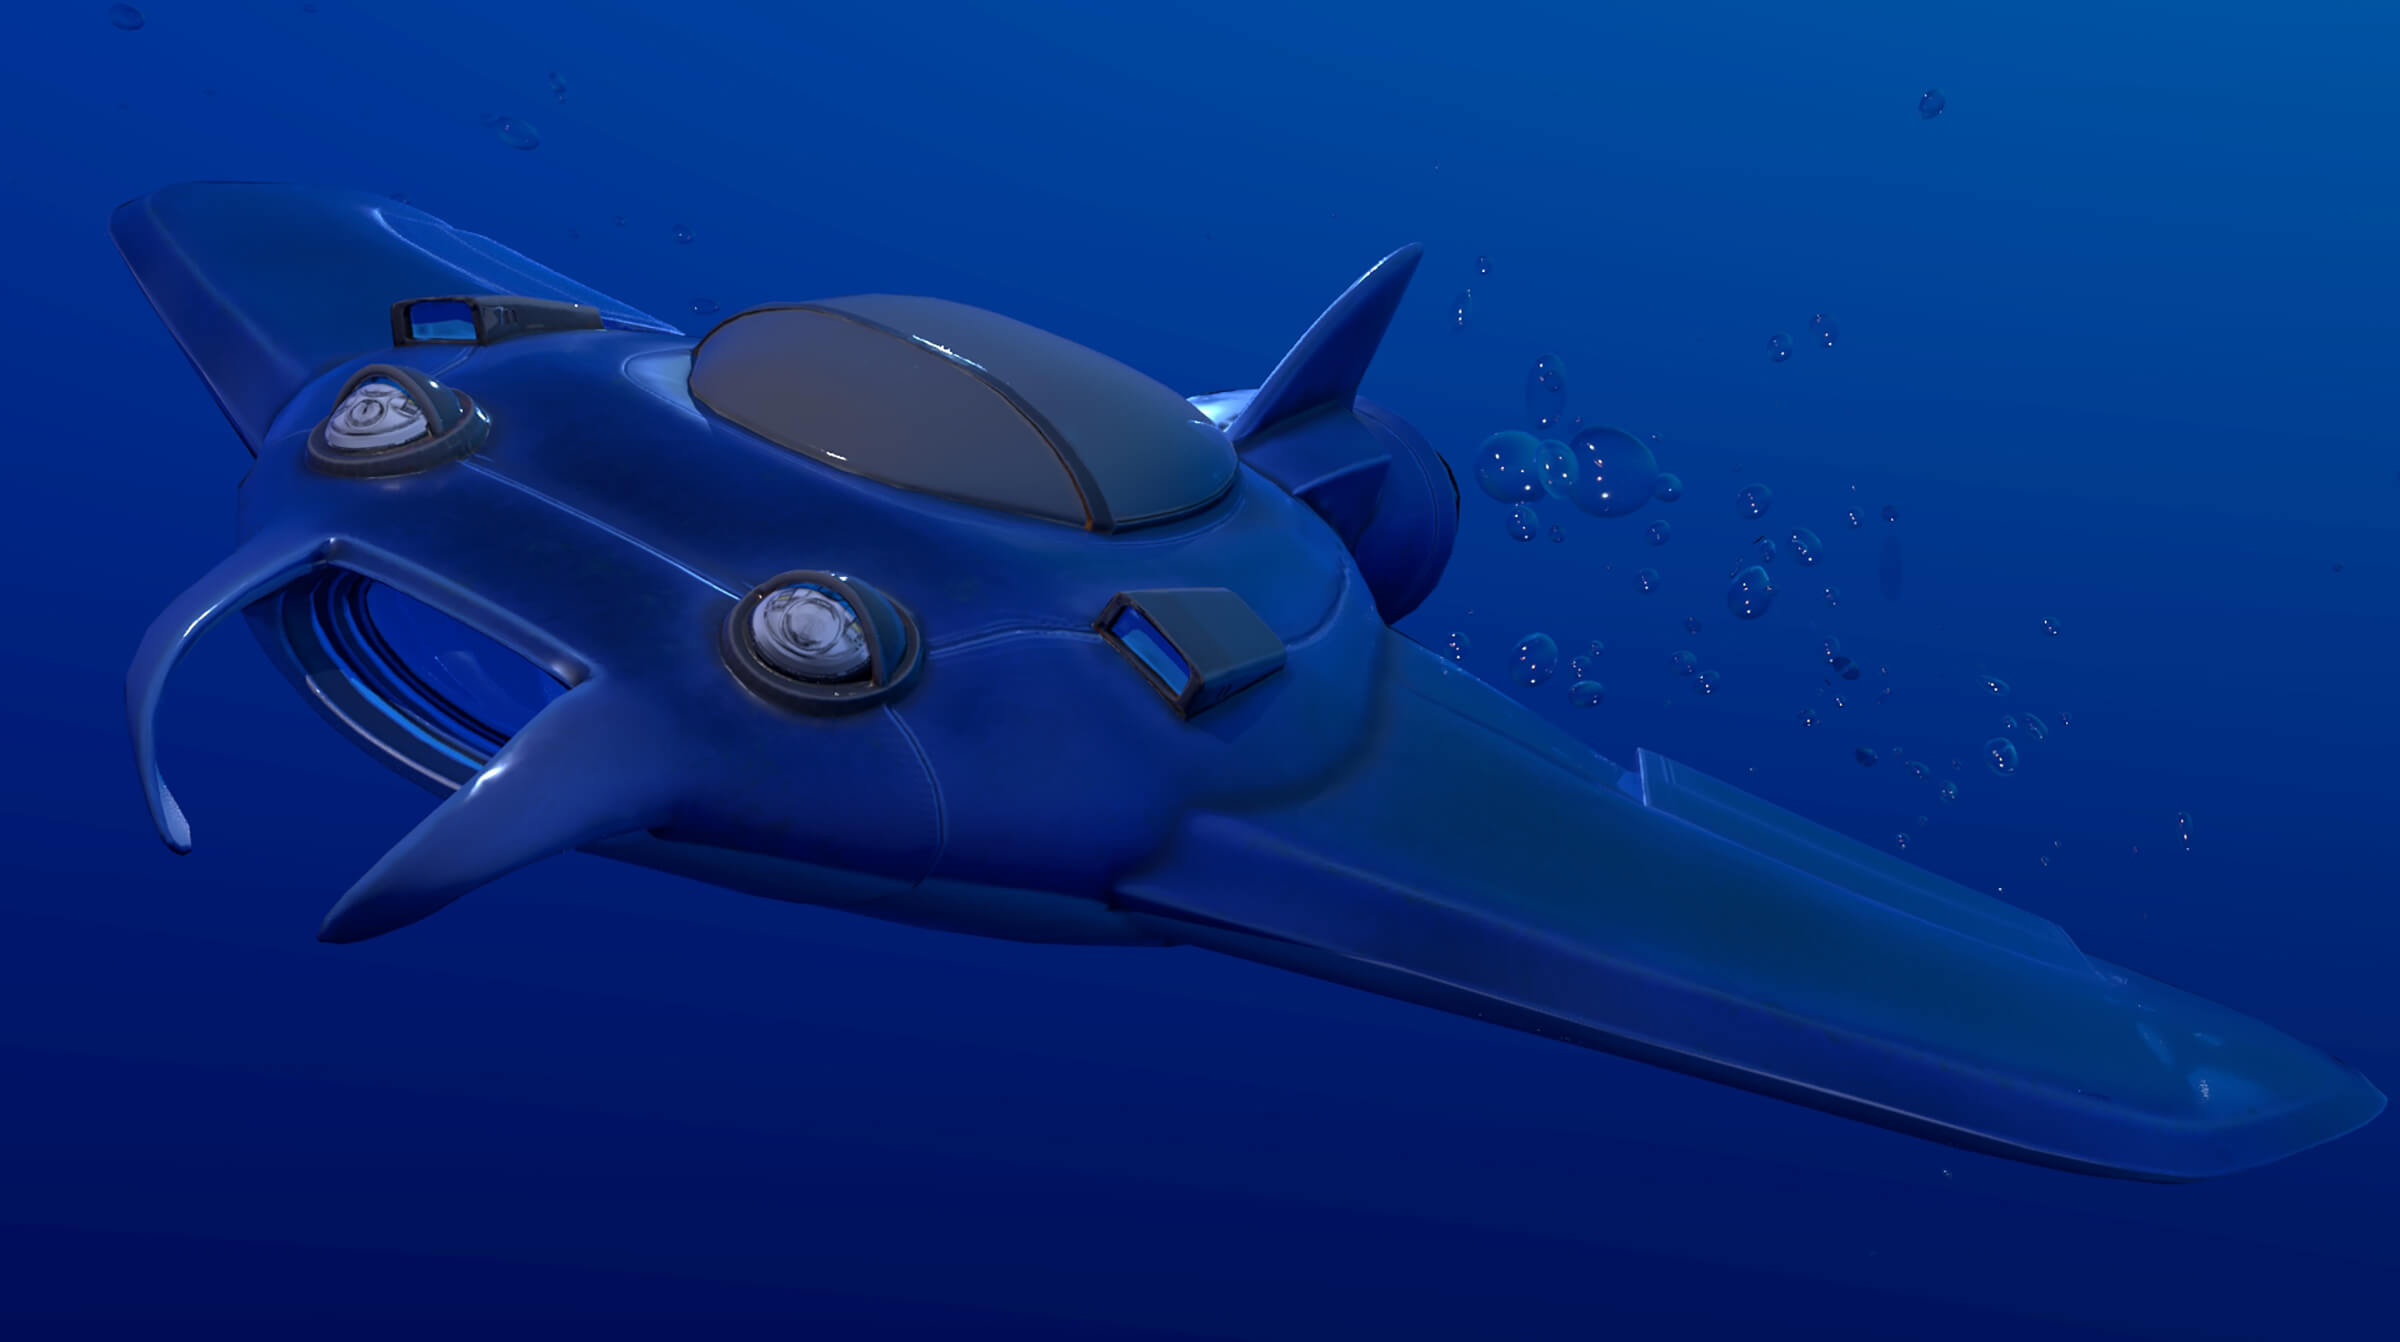 A disc-shaped underwater craft with wings and a fin